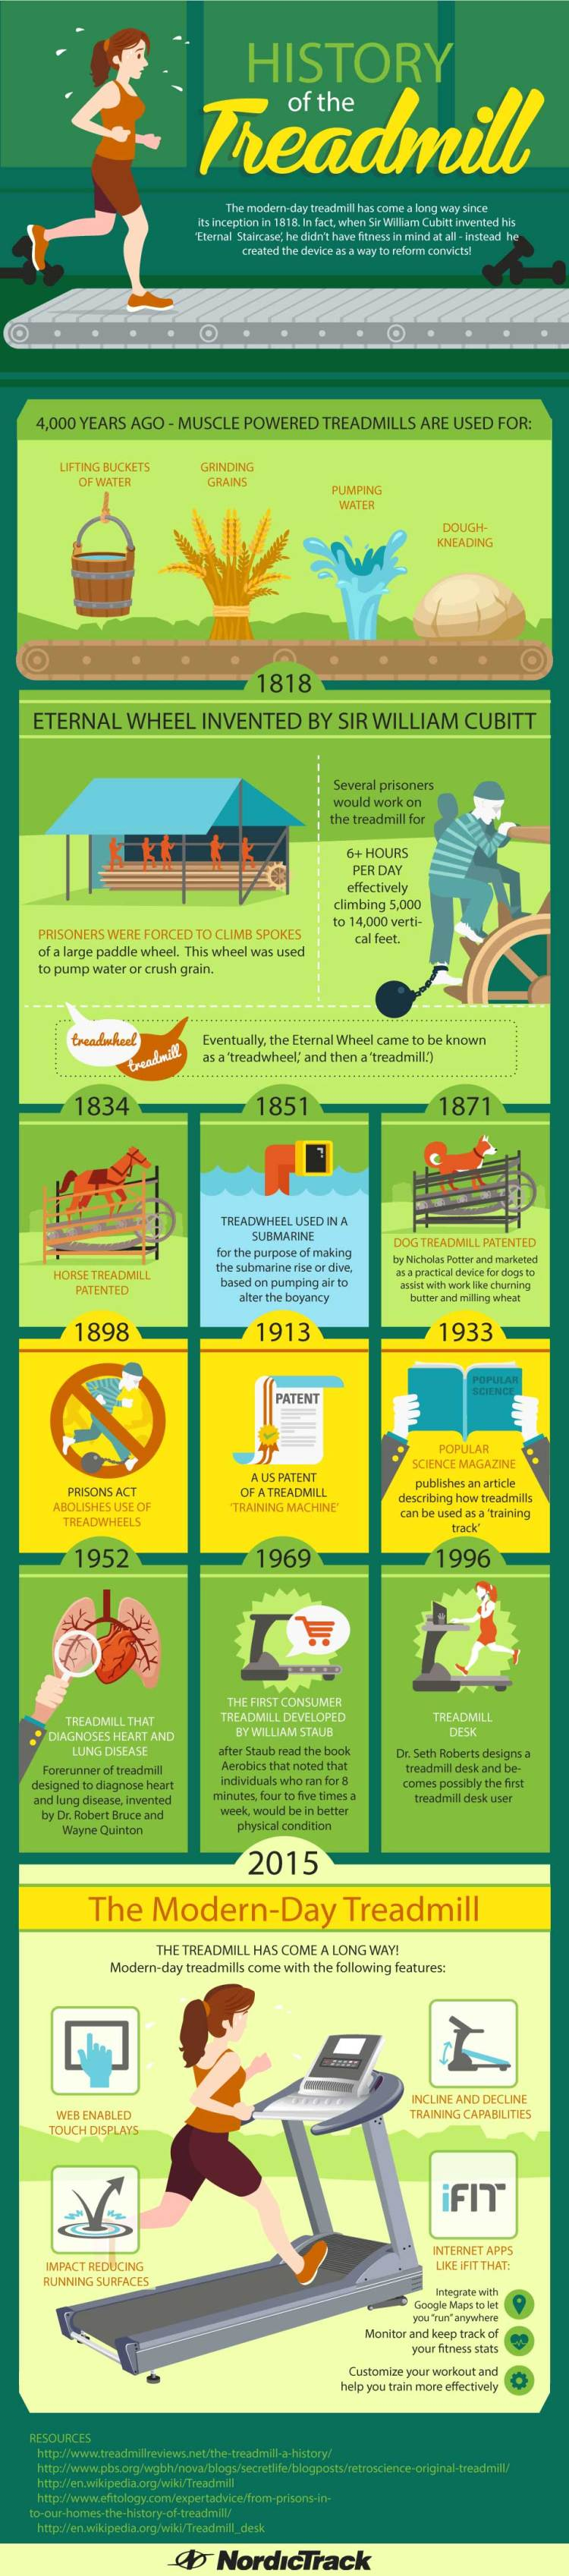 history of the treadmill infographic